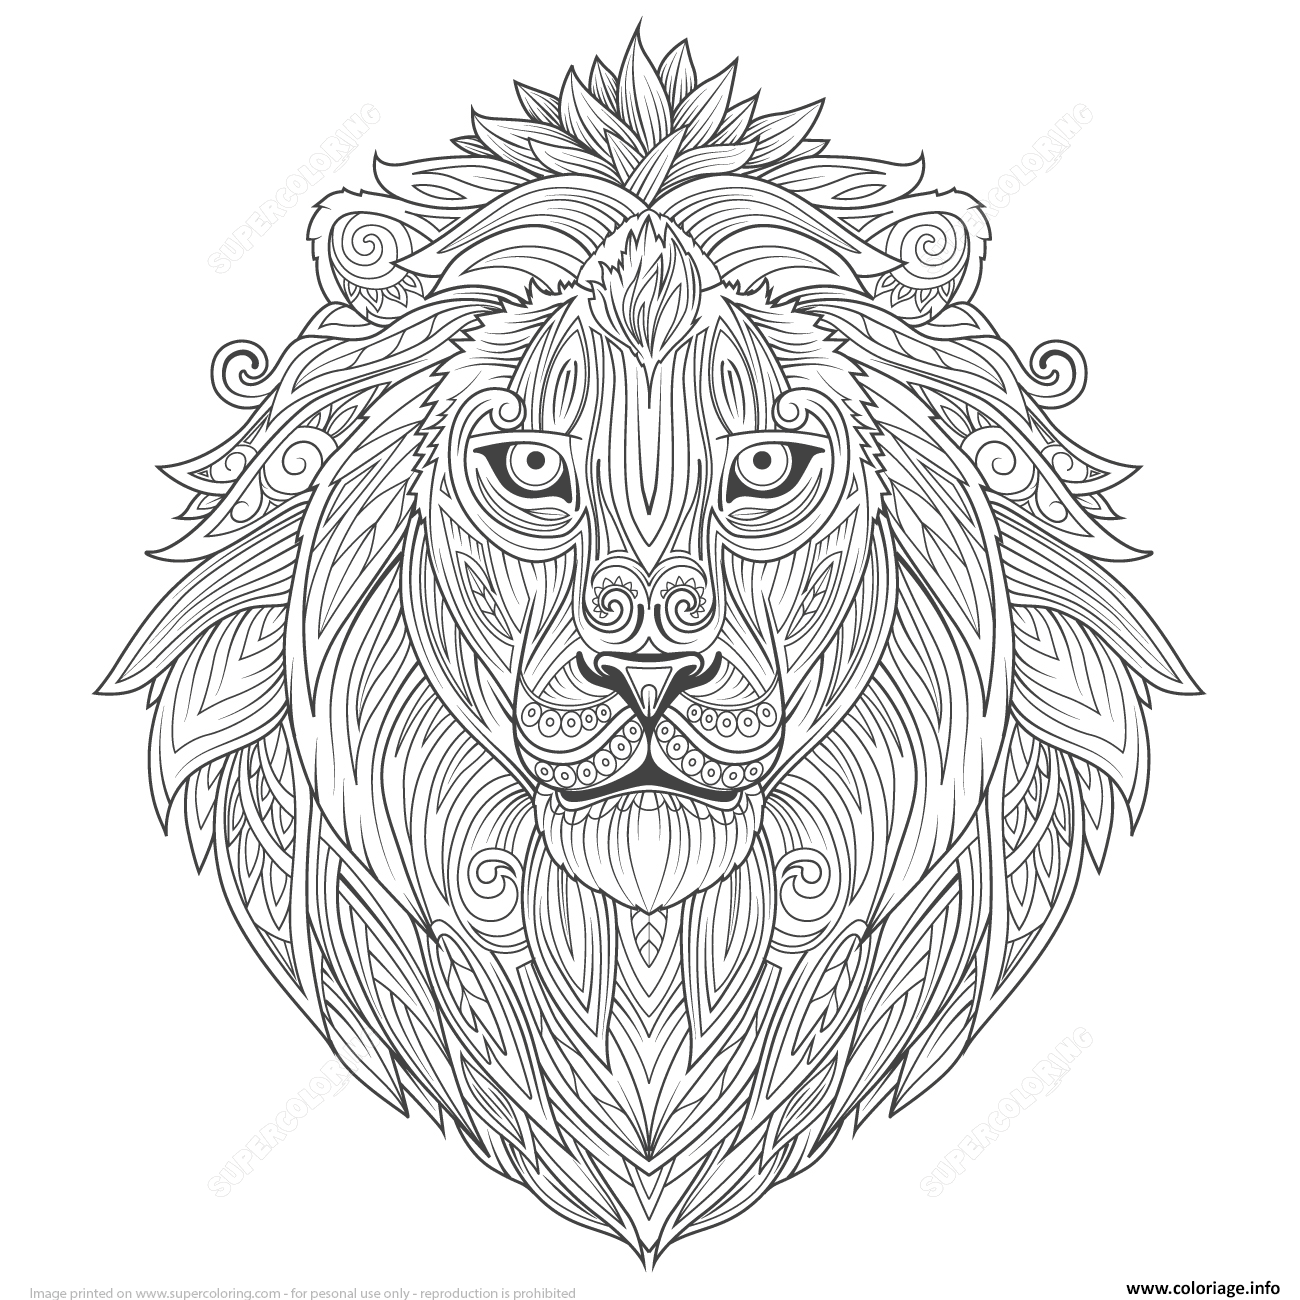 Dessin lion ethnic zentangle adulte Coloriage Gratuit à Imprimer